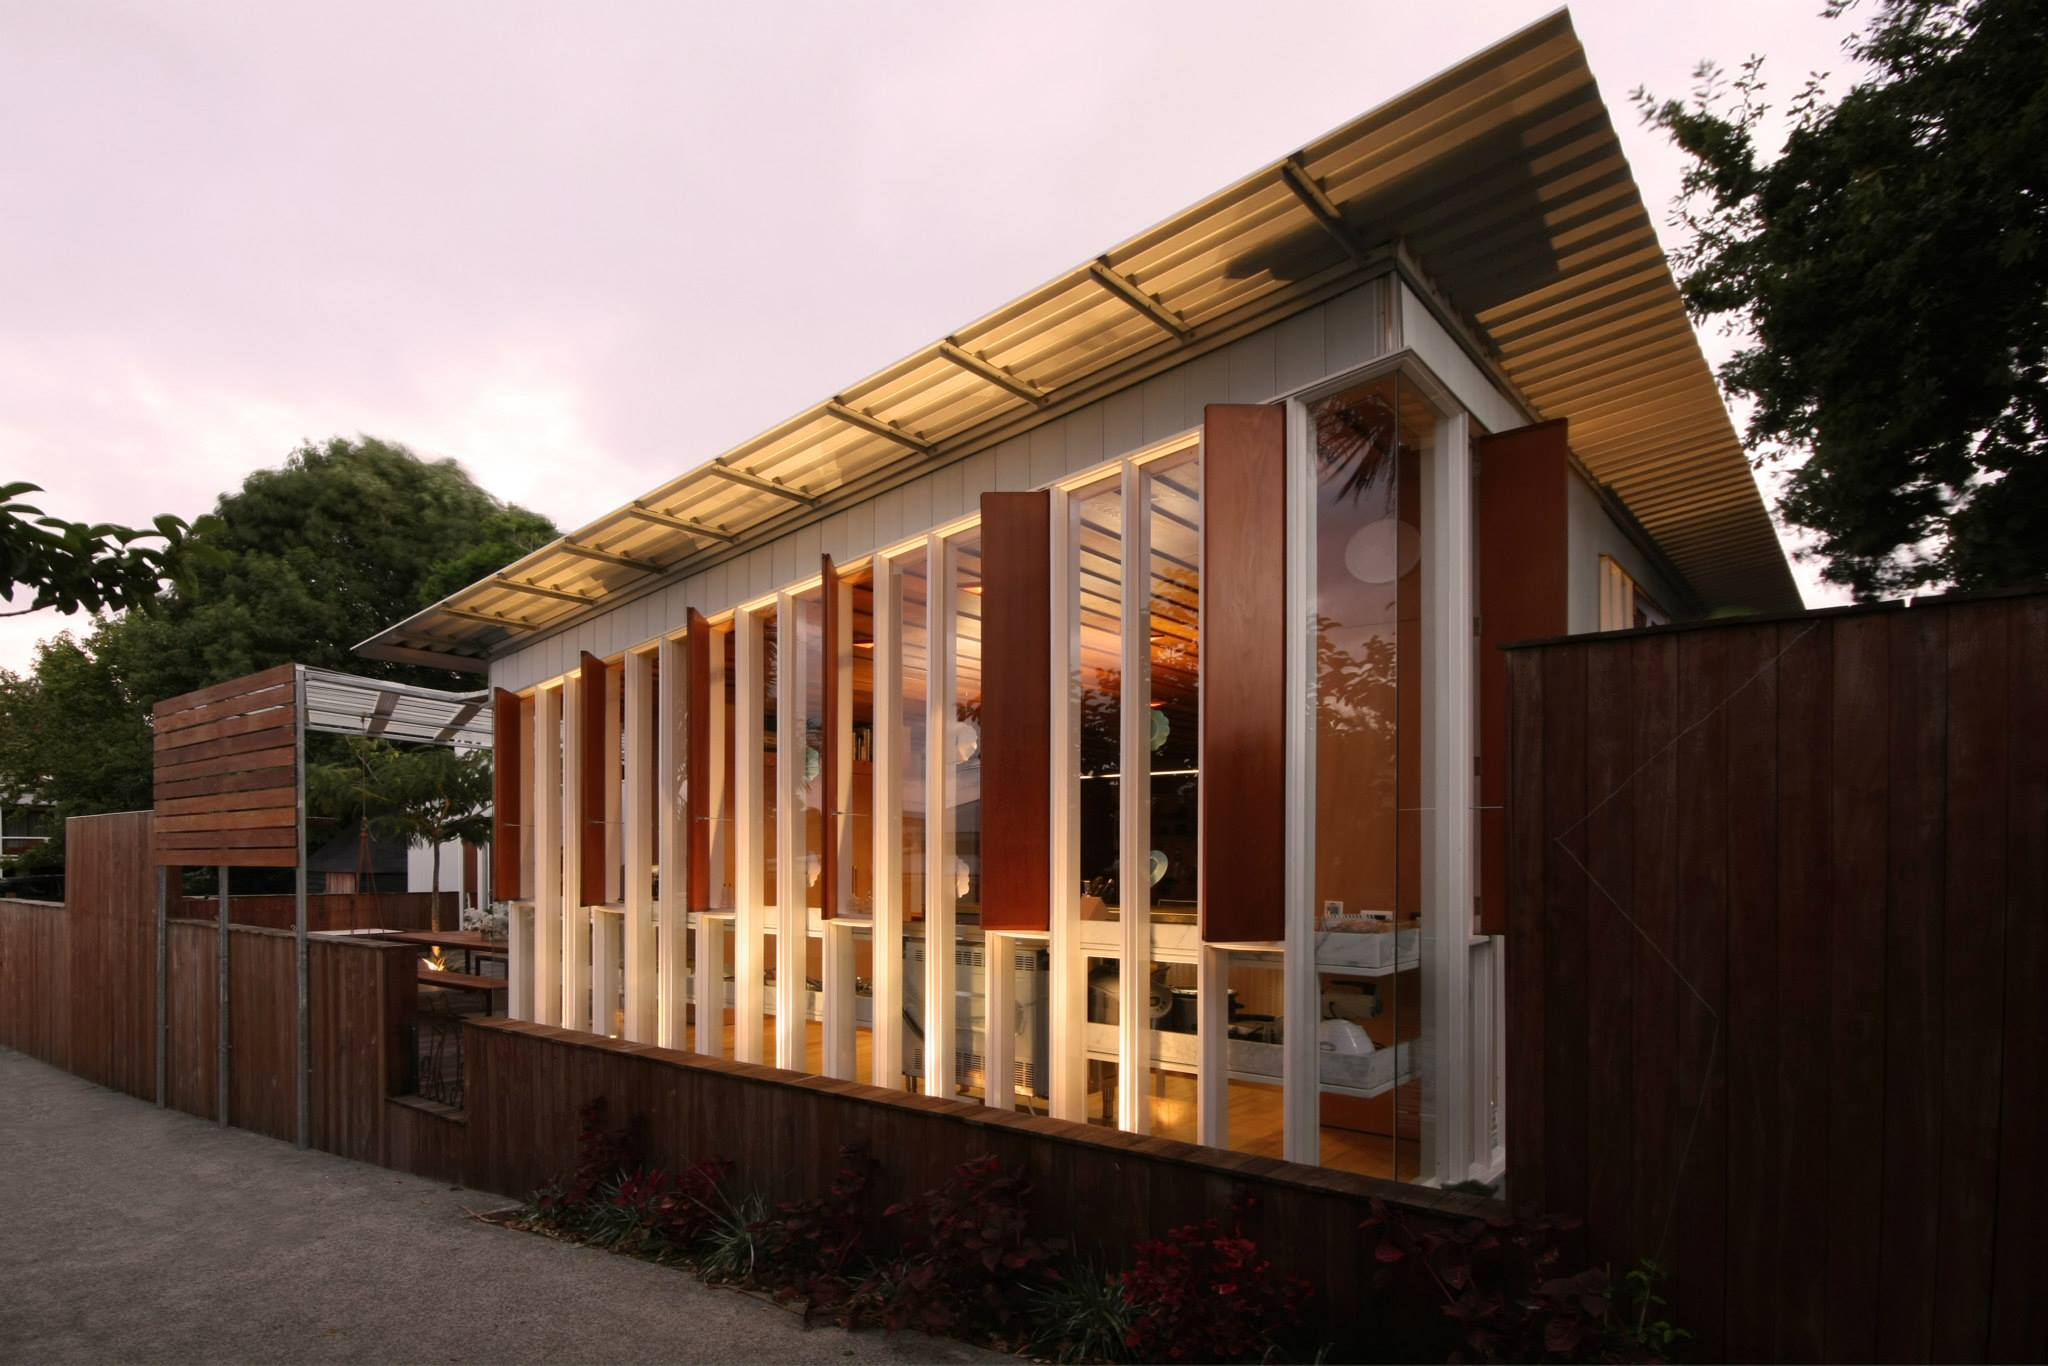 An Architect Designed And Built This Home For His Own Family Of Six. It Has